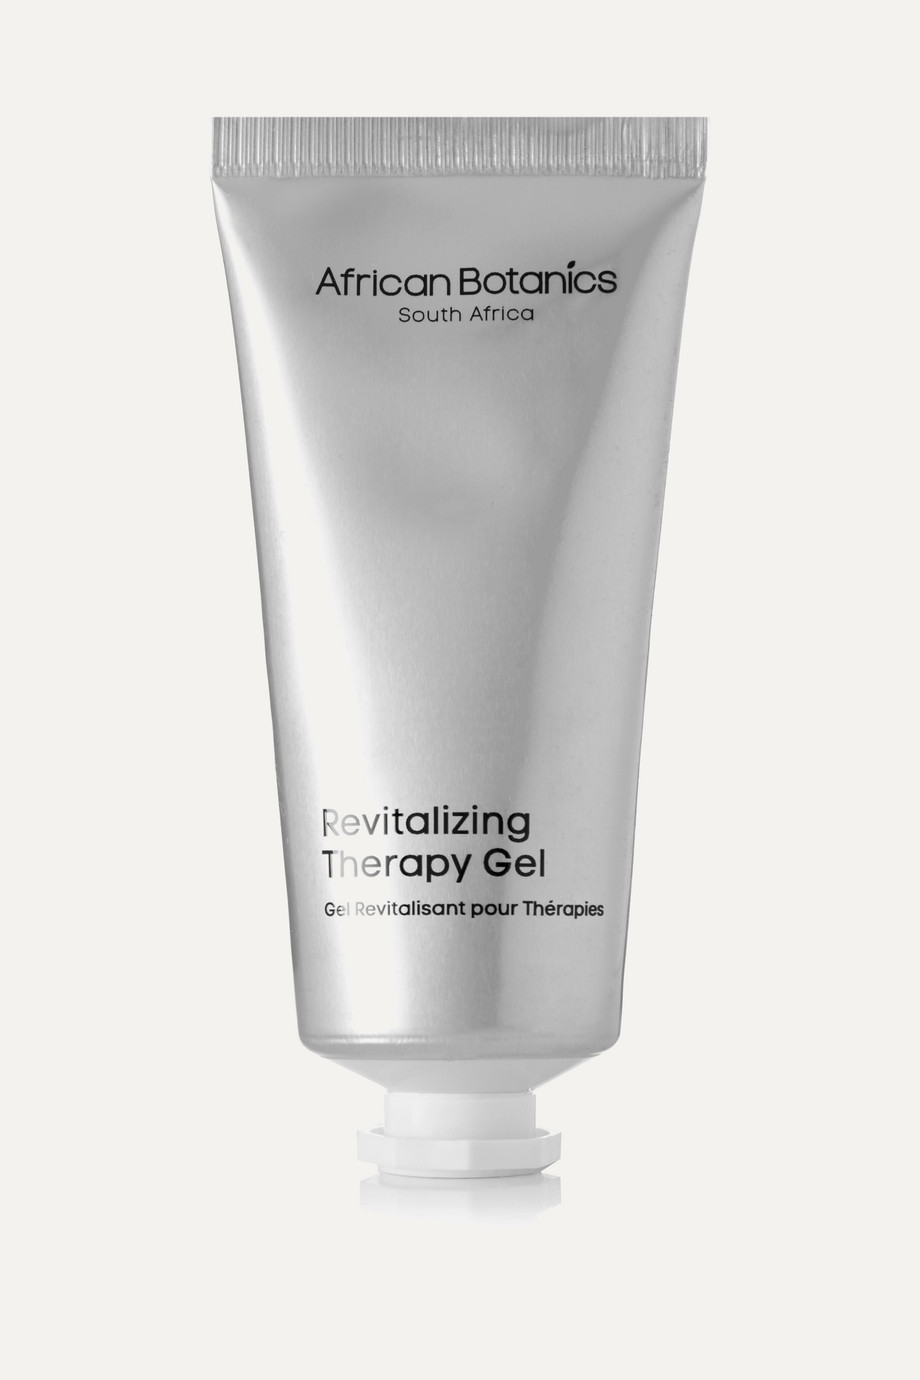 African Botanics Revitalizing Therapy Gel, 60ml